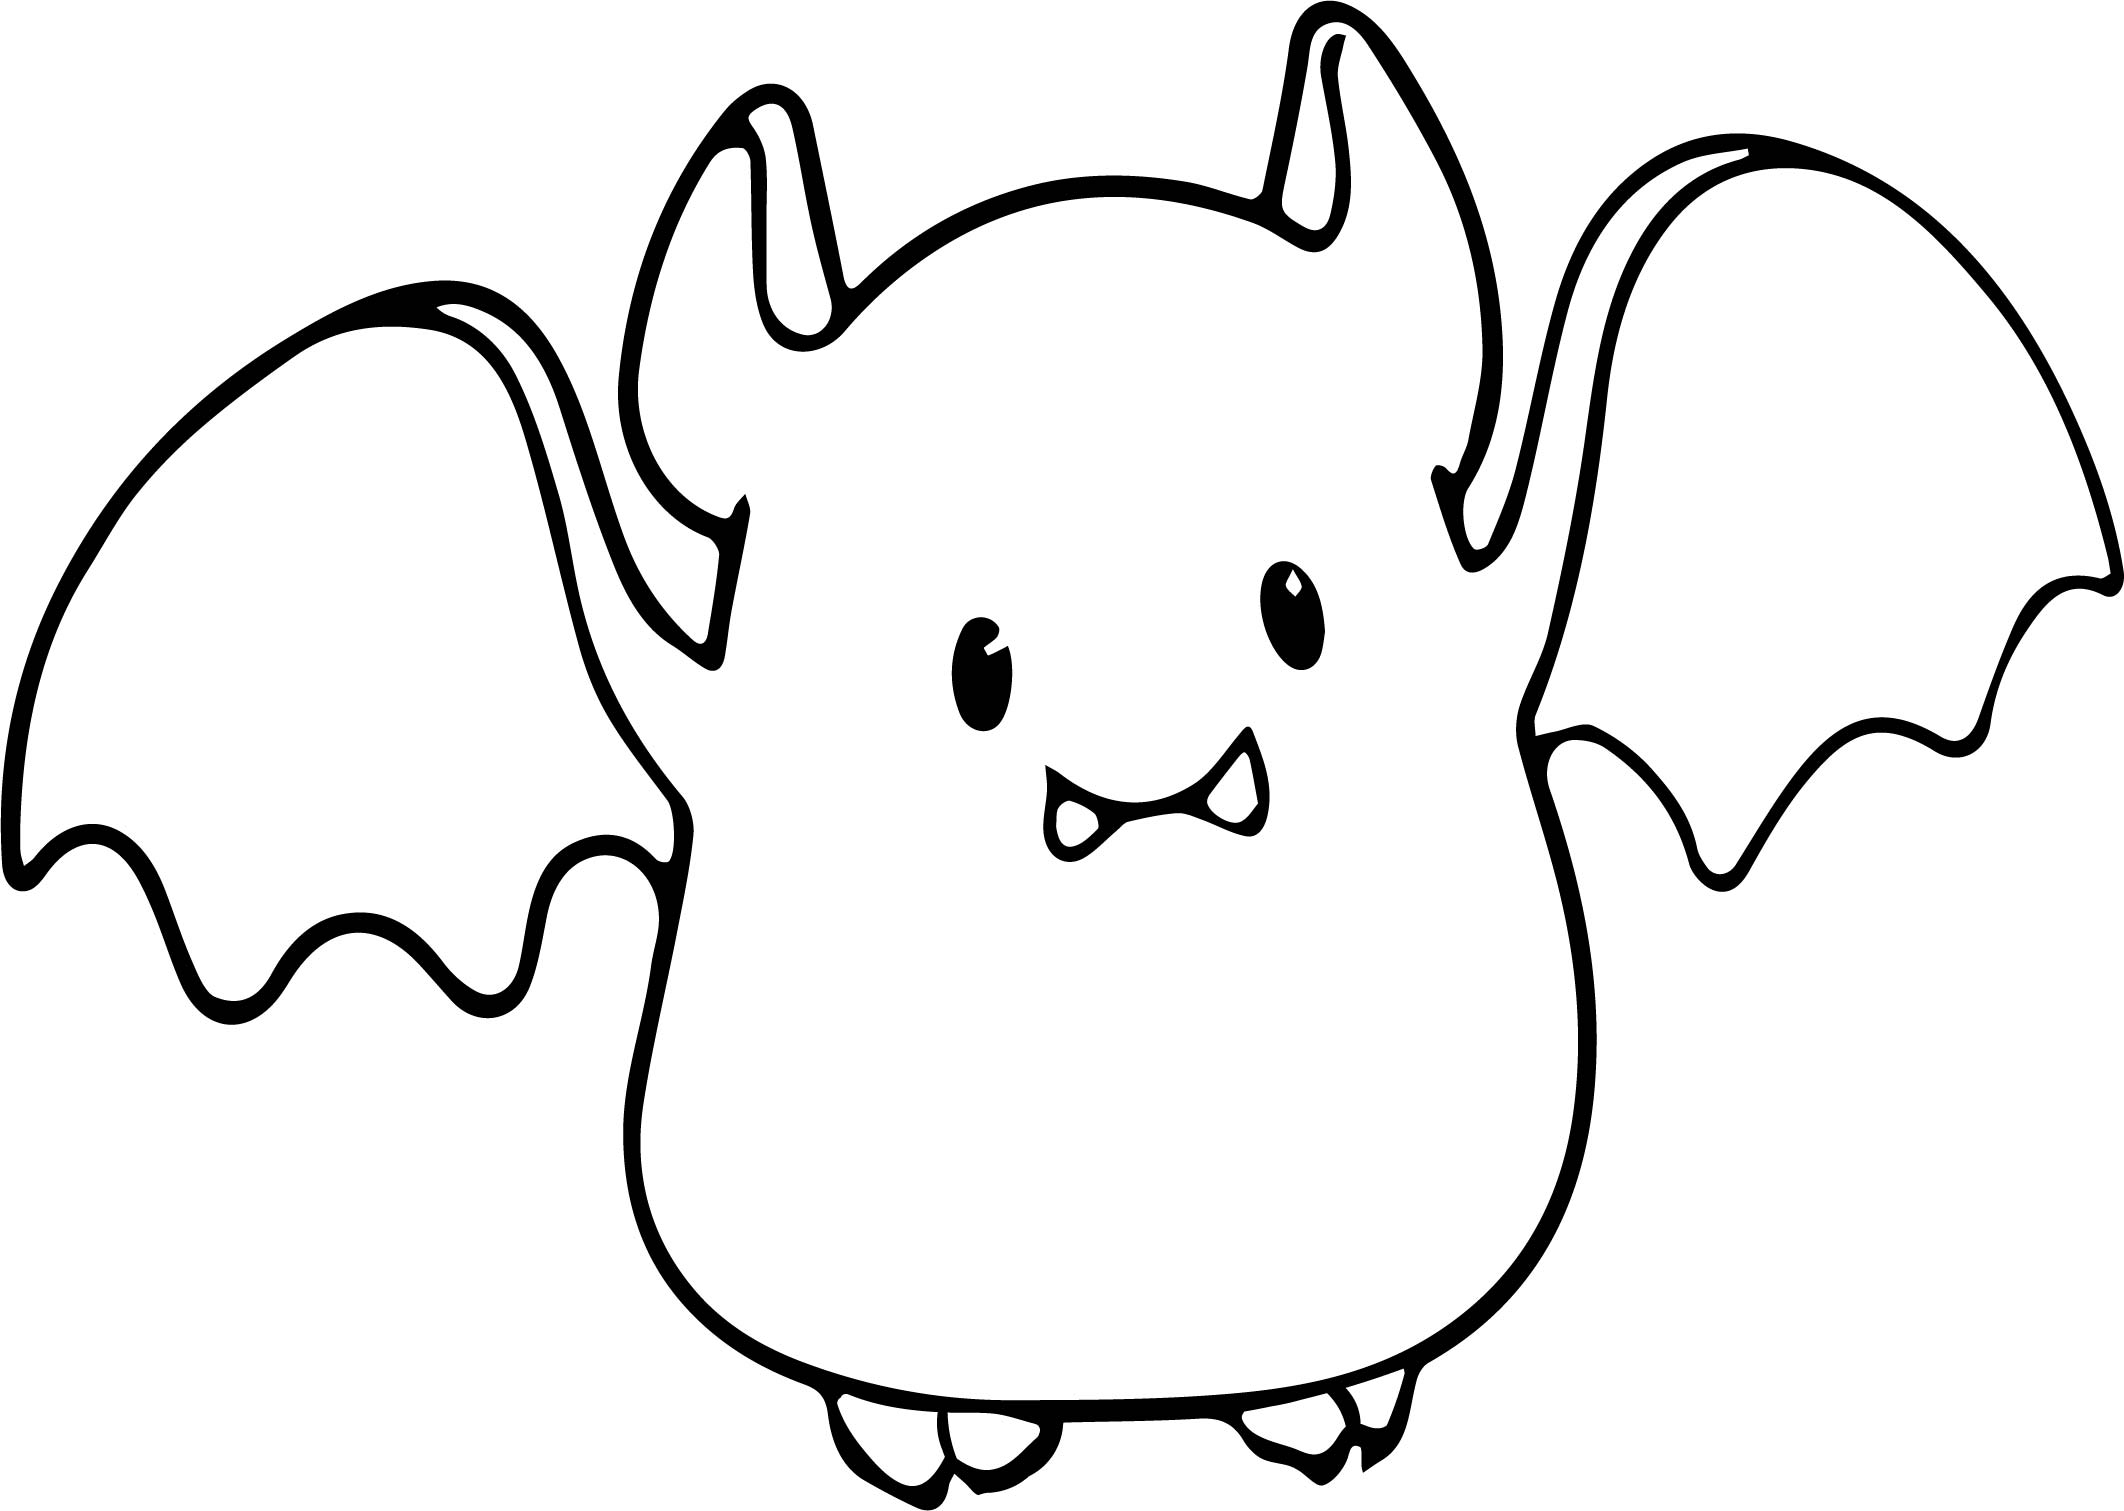 Small cute baby cartoon vampire bat coloring page for Bats coloring pages